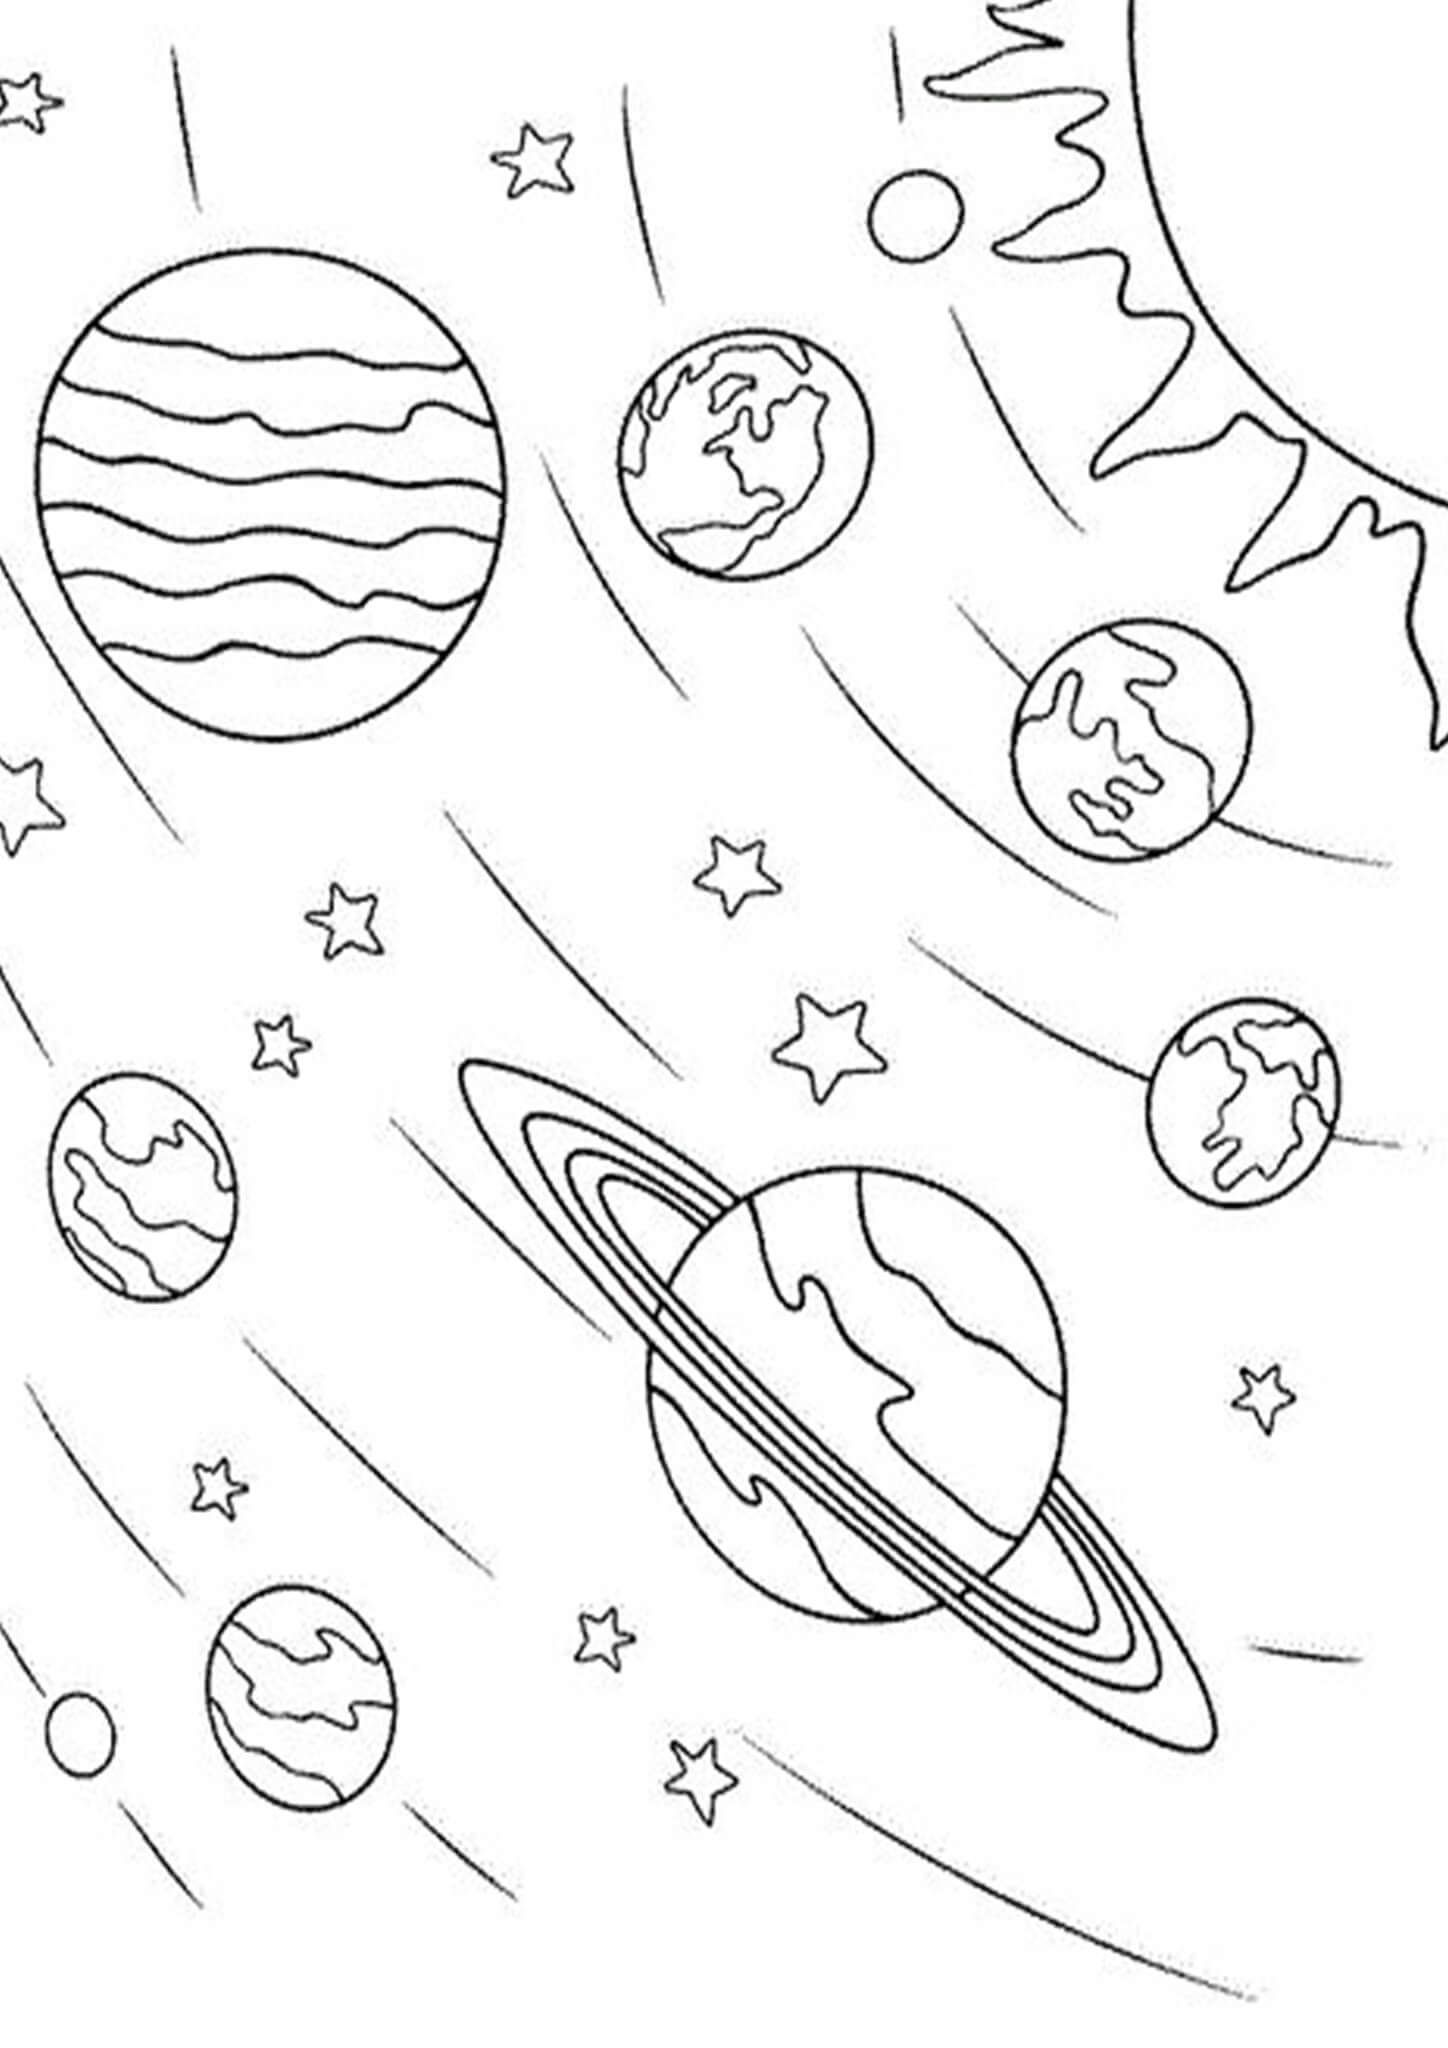 Free Easy To Print Space Coloring Pages Space Coloring Pages Coloring Pages Free Printable Coloring Pages [ 2048 x 1448 Pixel ]